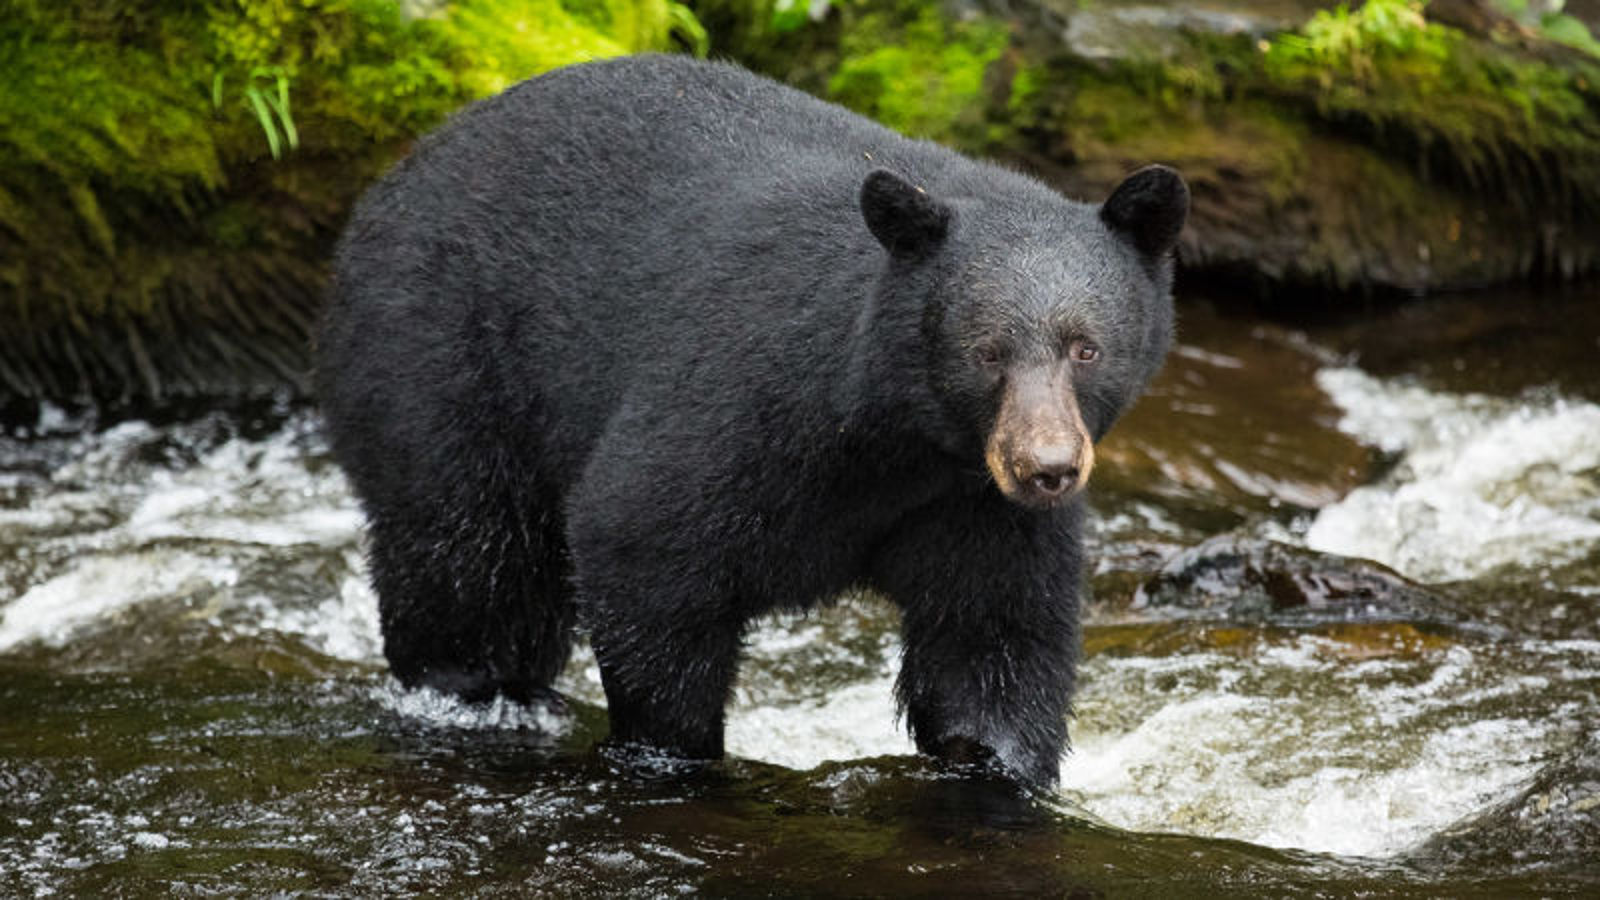 Yosemite Closed Indefinitely After Bear Spotted In Park